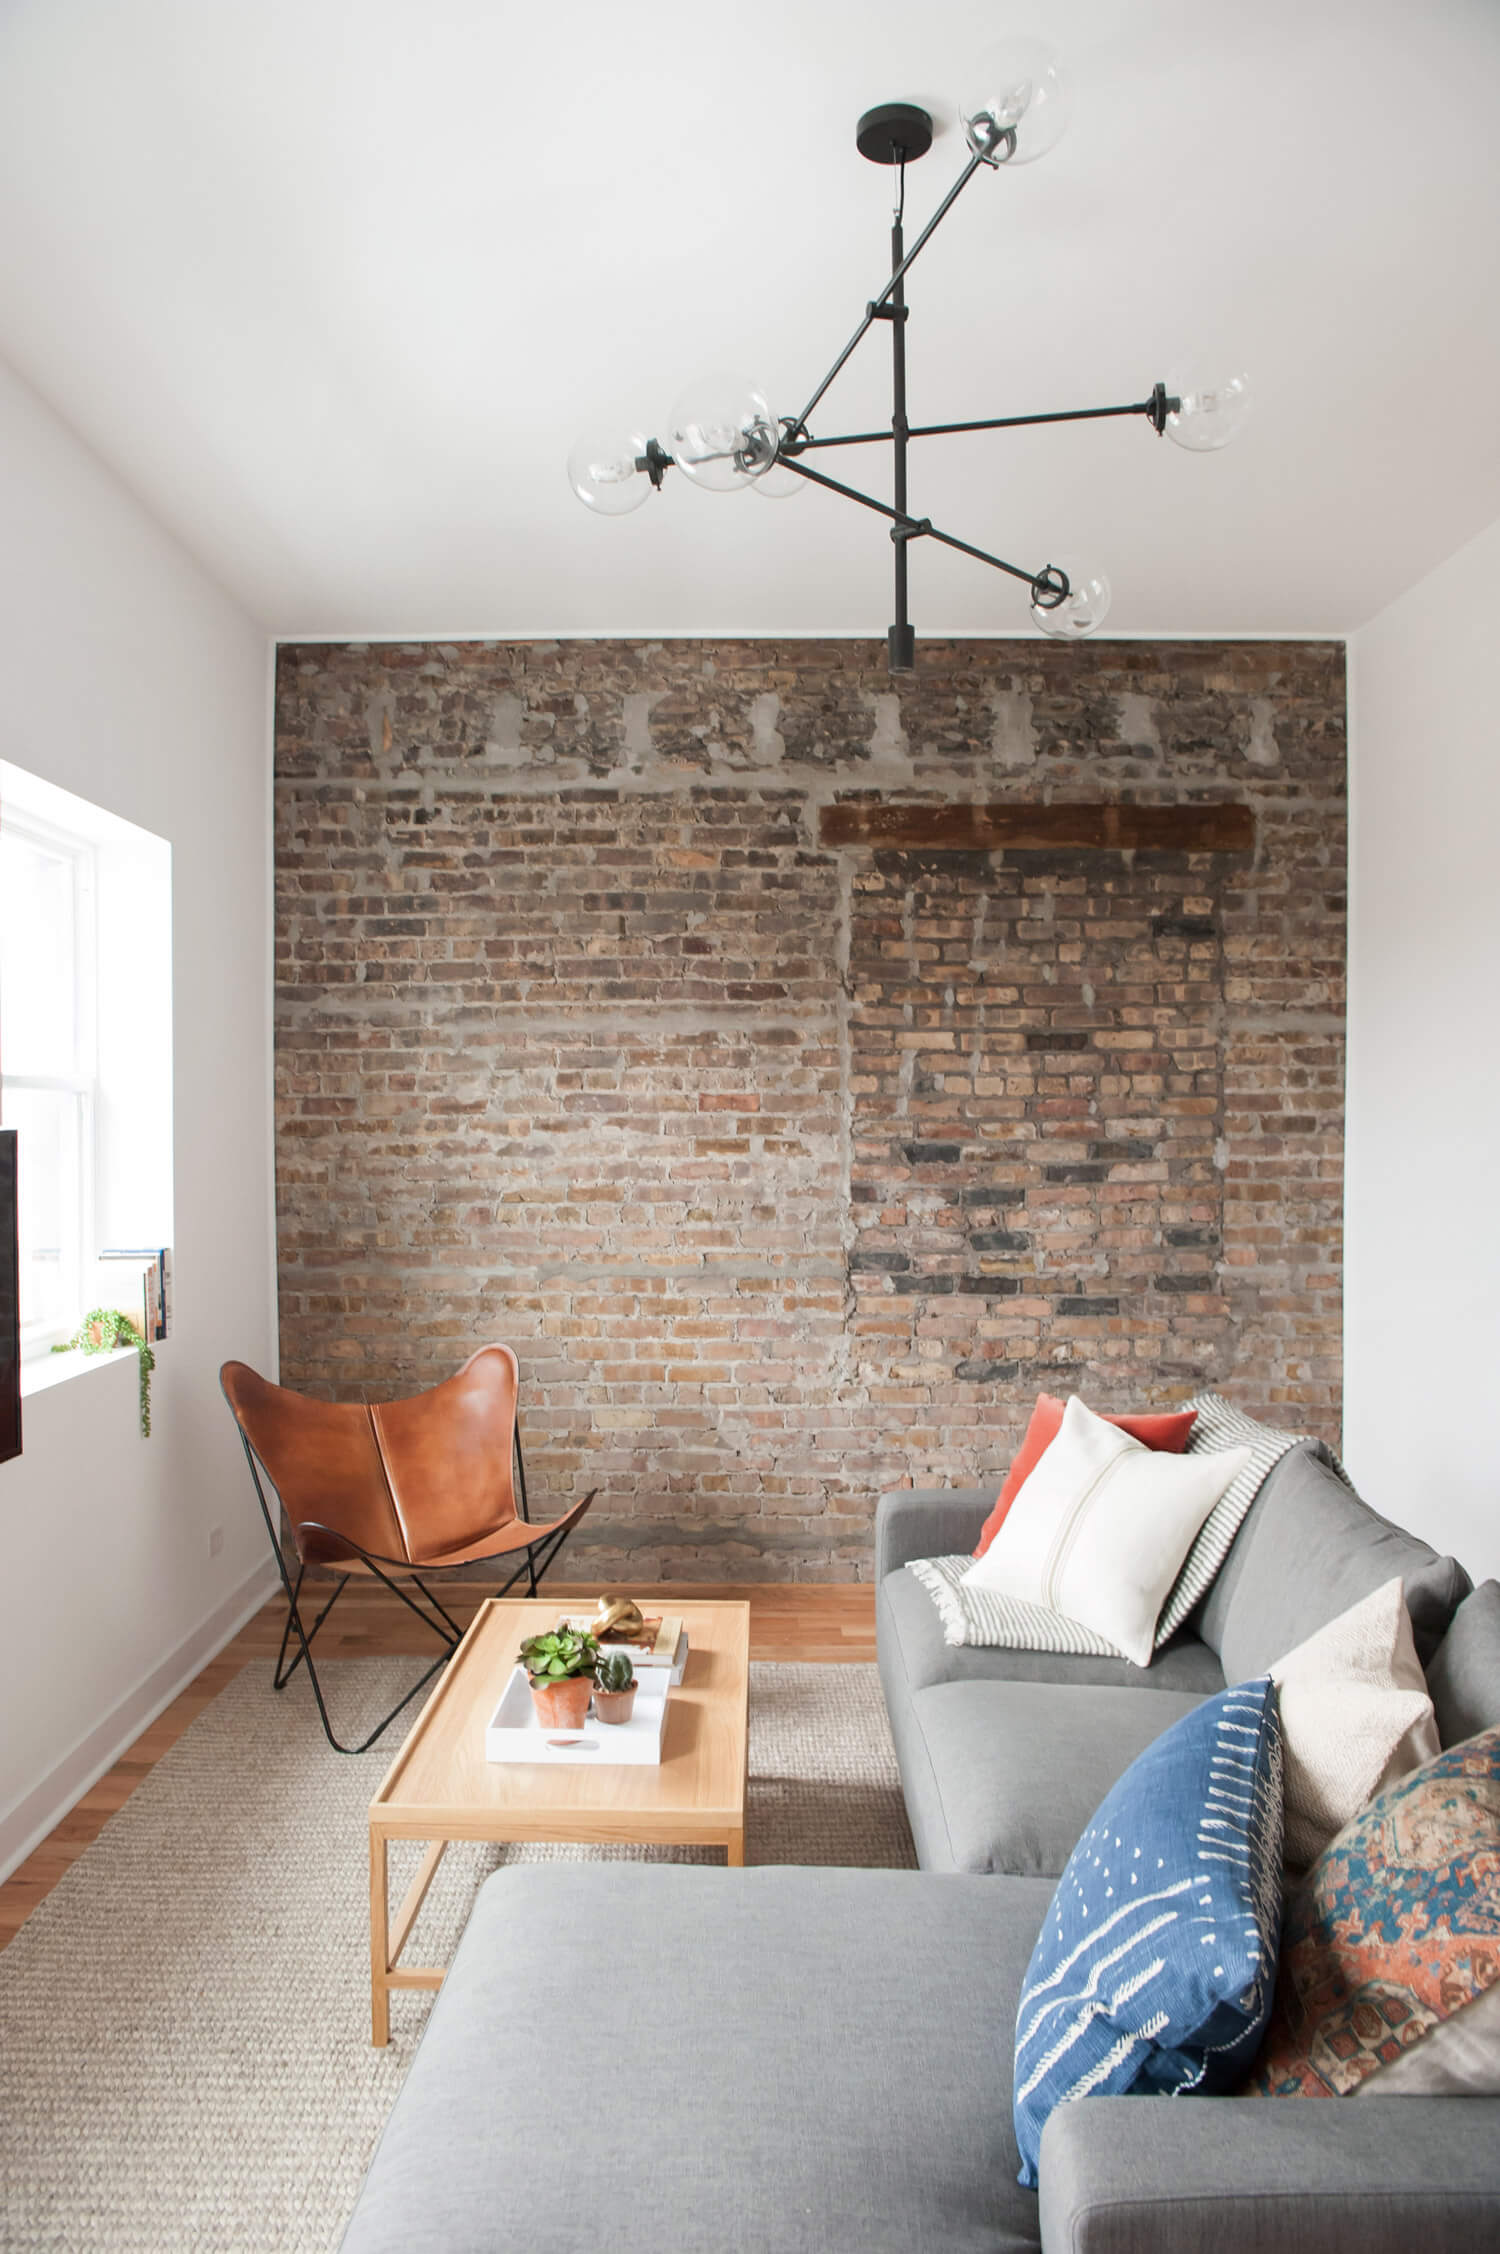 Mix brick, leather, and upholstery for textural balance.